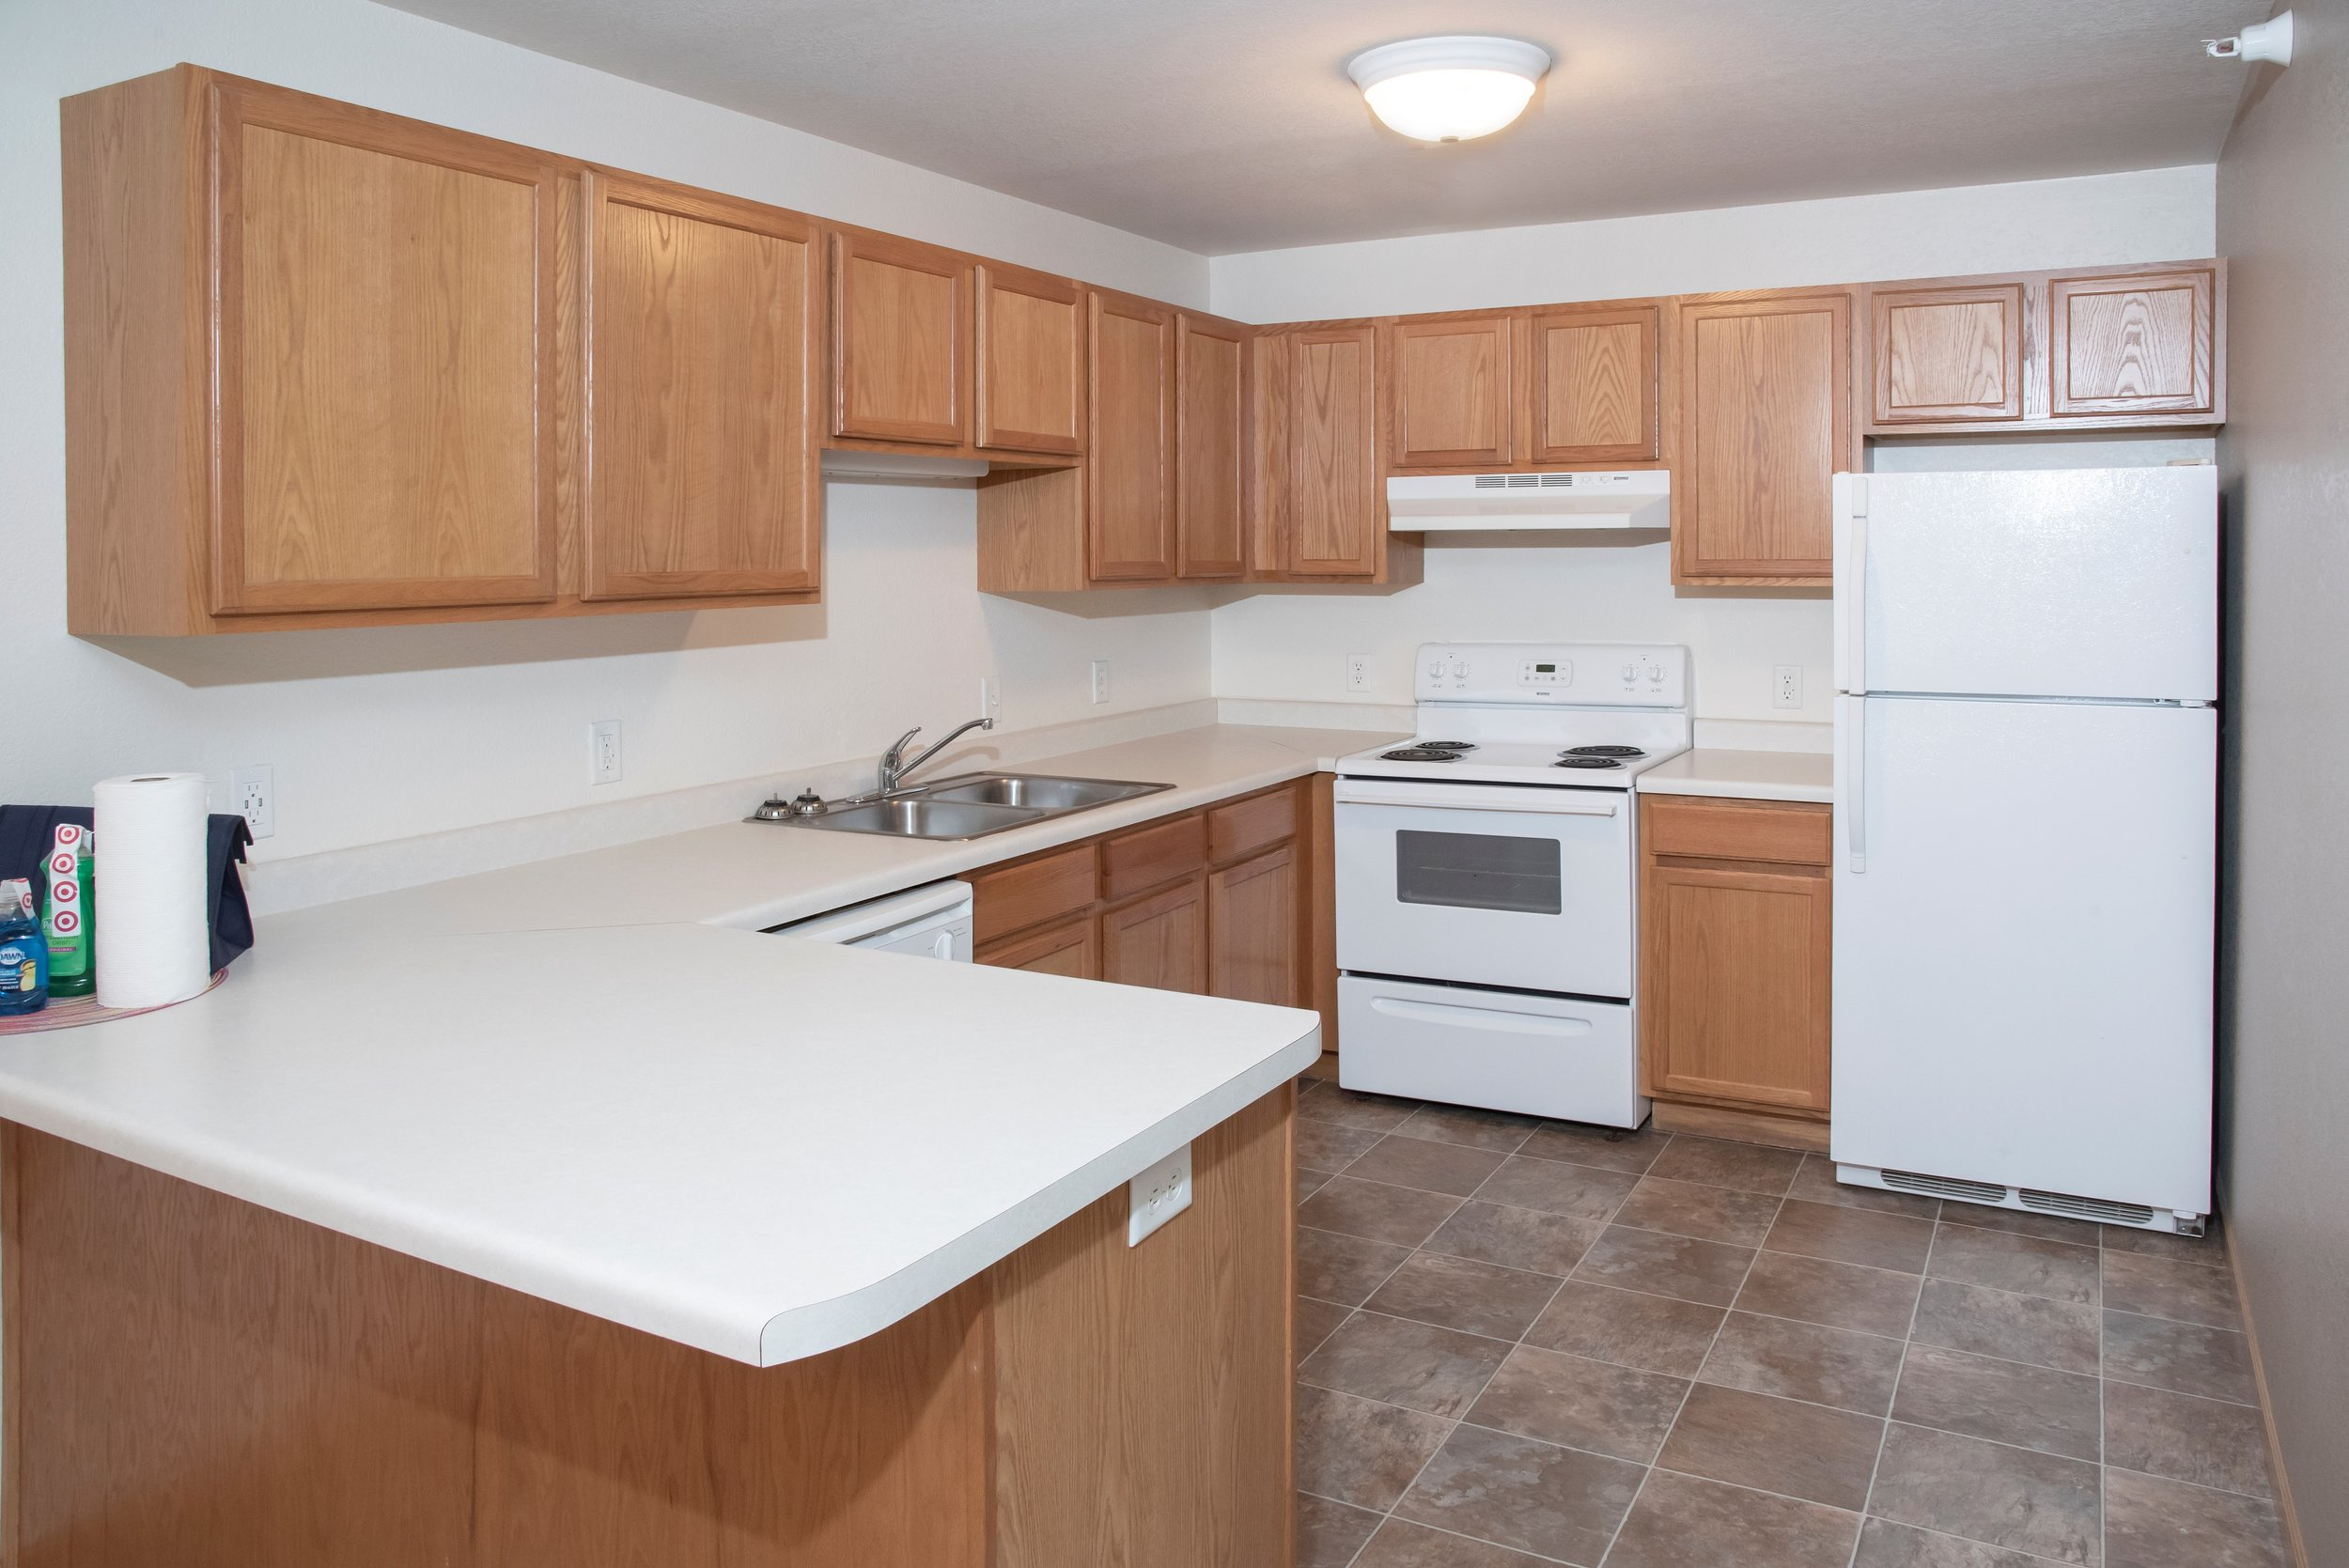 Large Kitchen Cabinets and Laminate Countertops